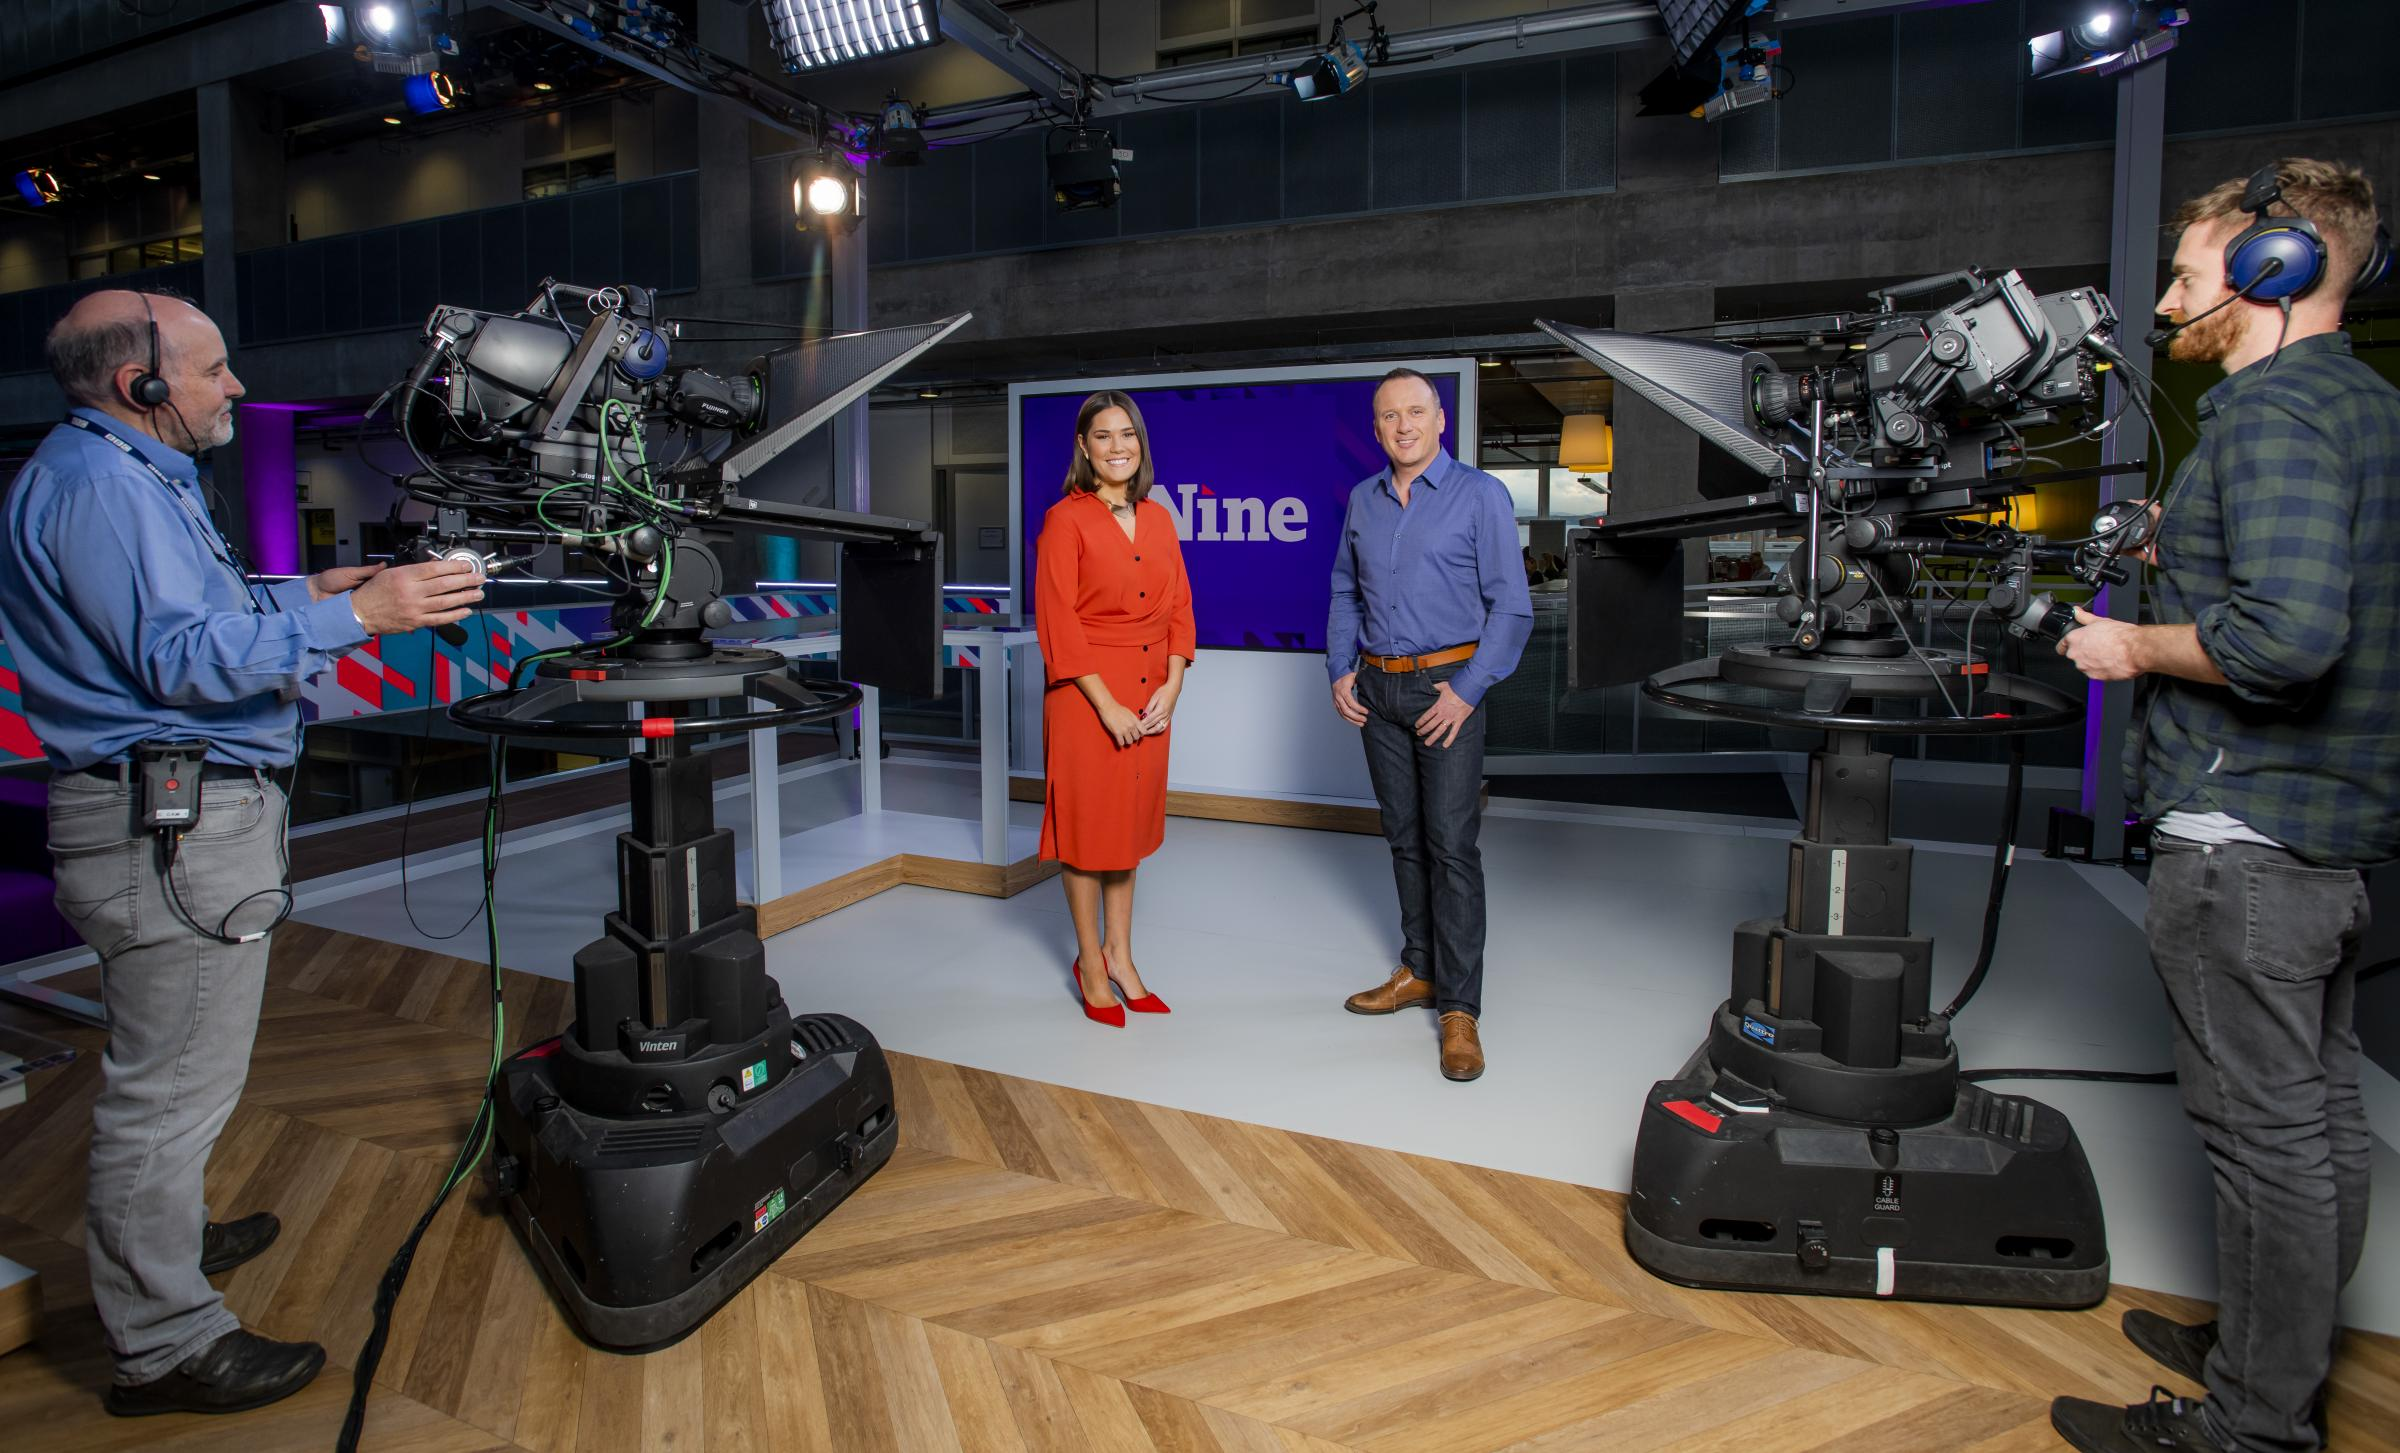 Viewing figures revealed for new BBC Scotland channel